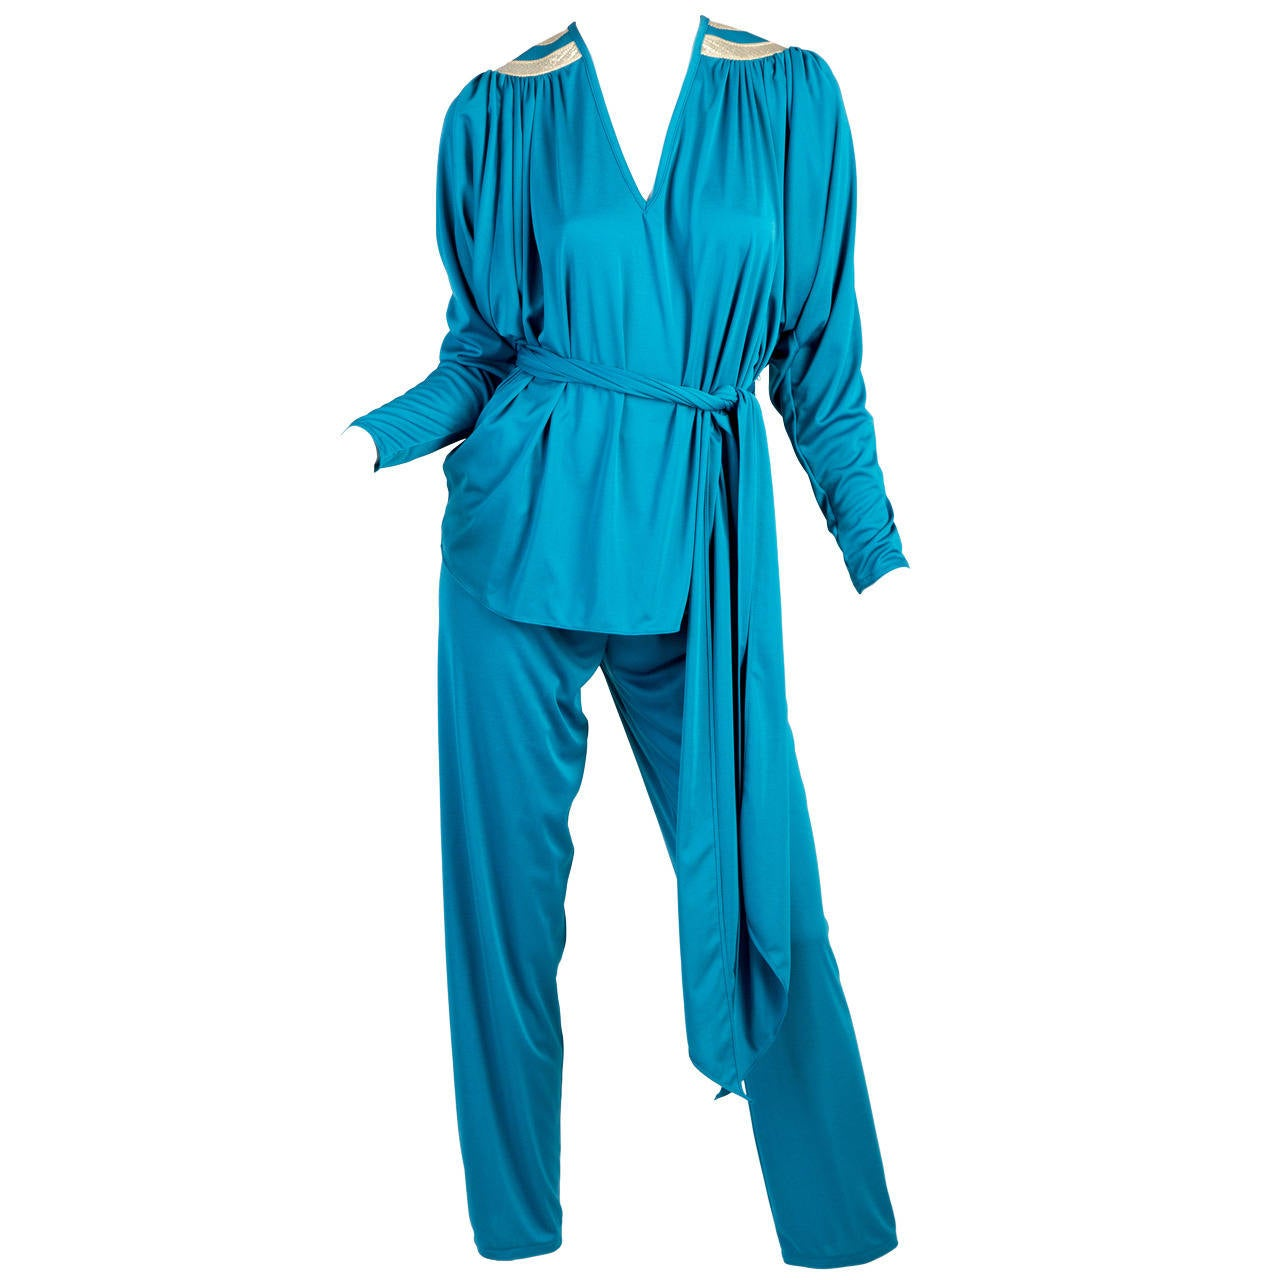 1970s Bill Tice Turquoise & Gold Gathered Jersey Dolman Sleeve Top & Pants Set